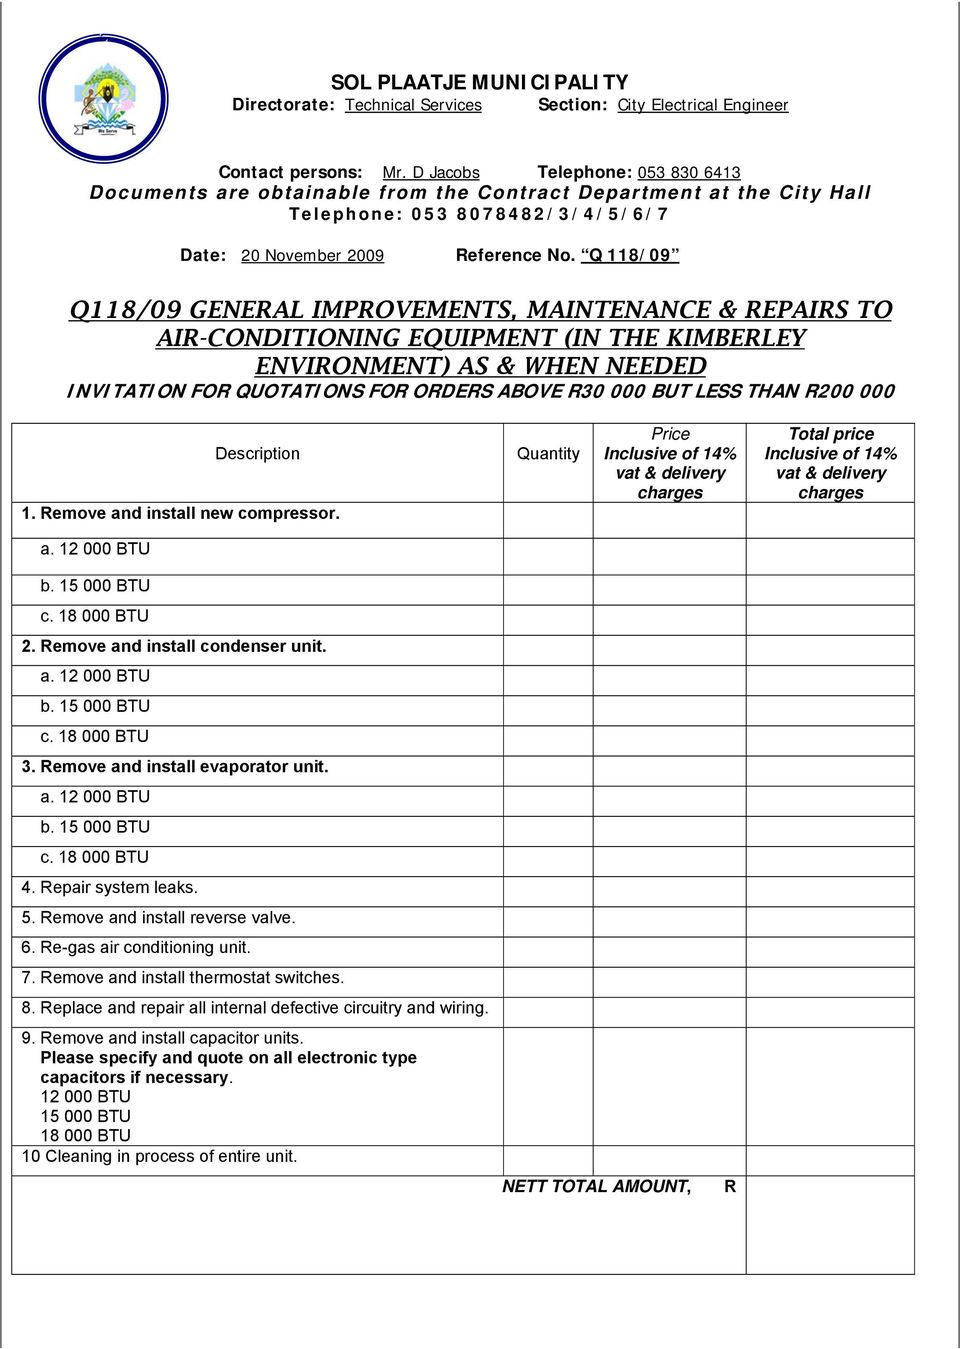 Q 118/09 Q118/09 GENERAL IMPROVEMENTS, MAINTENANCE & REPAIRS TO AIR-CONDITIONING EQUIPMENT (IN THE KIMBERLEY ENVIRONMENT) AS & WHEN NEEDED INVITATION FOR QUOTATIONS FOR ORDERS ABOVE R30 000 BUT LESS